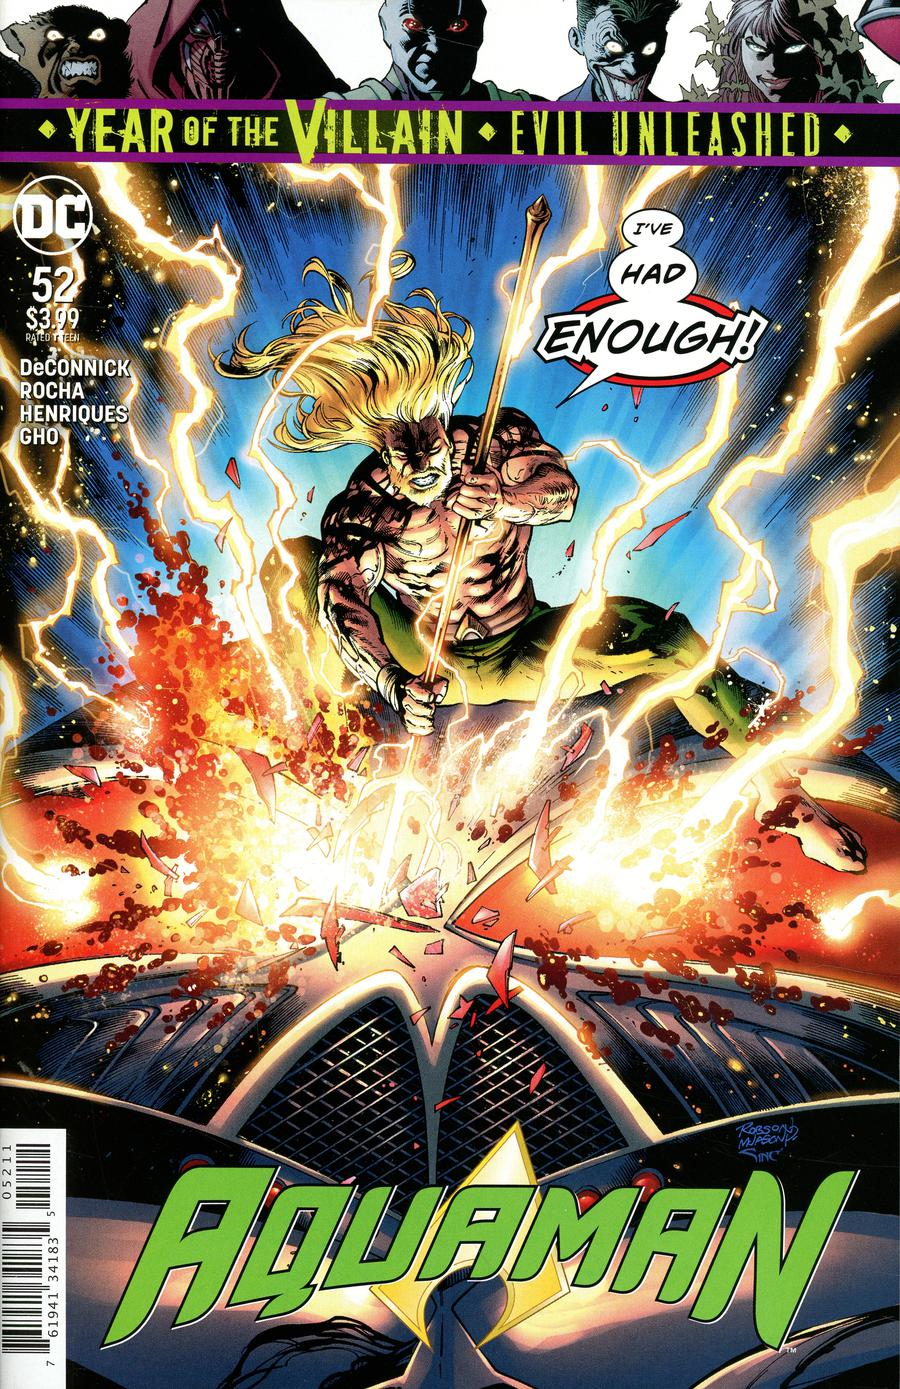 Aquaman Vol 6 #52 Cover A Regular Robson Rocha & Jason Paz Cover (Year Of The Villain Evil Unleashed Tie-In)